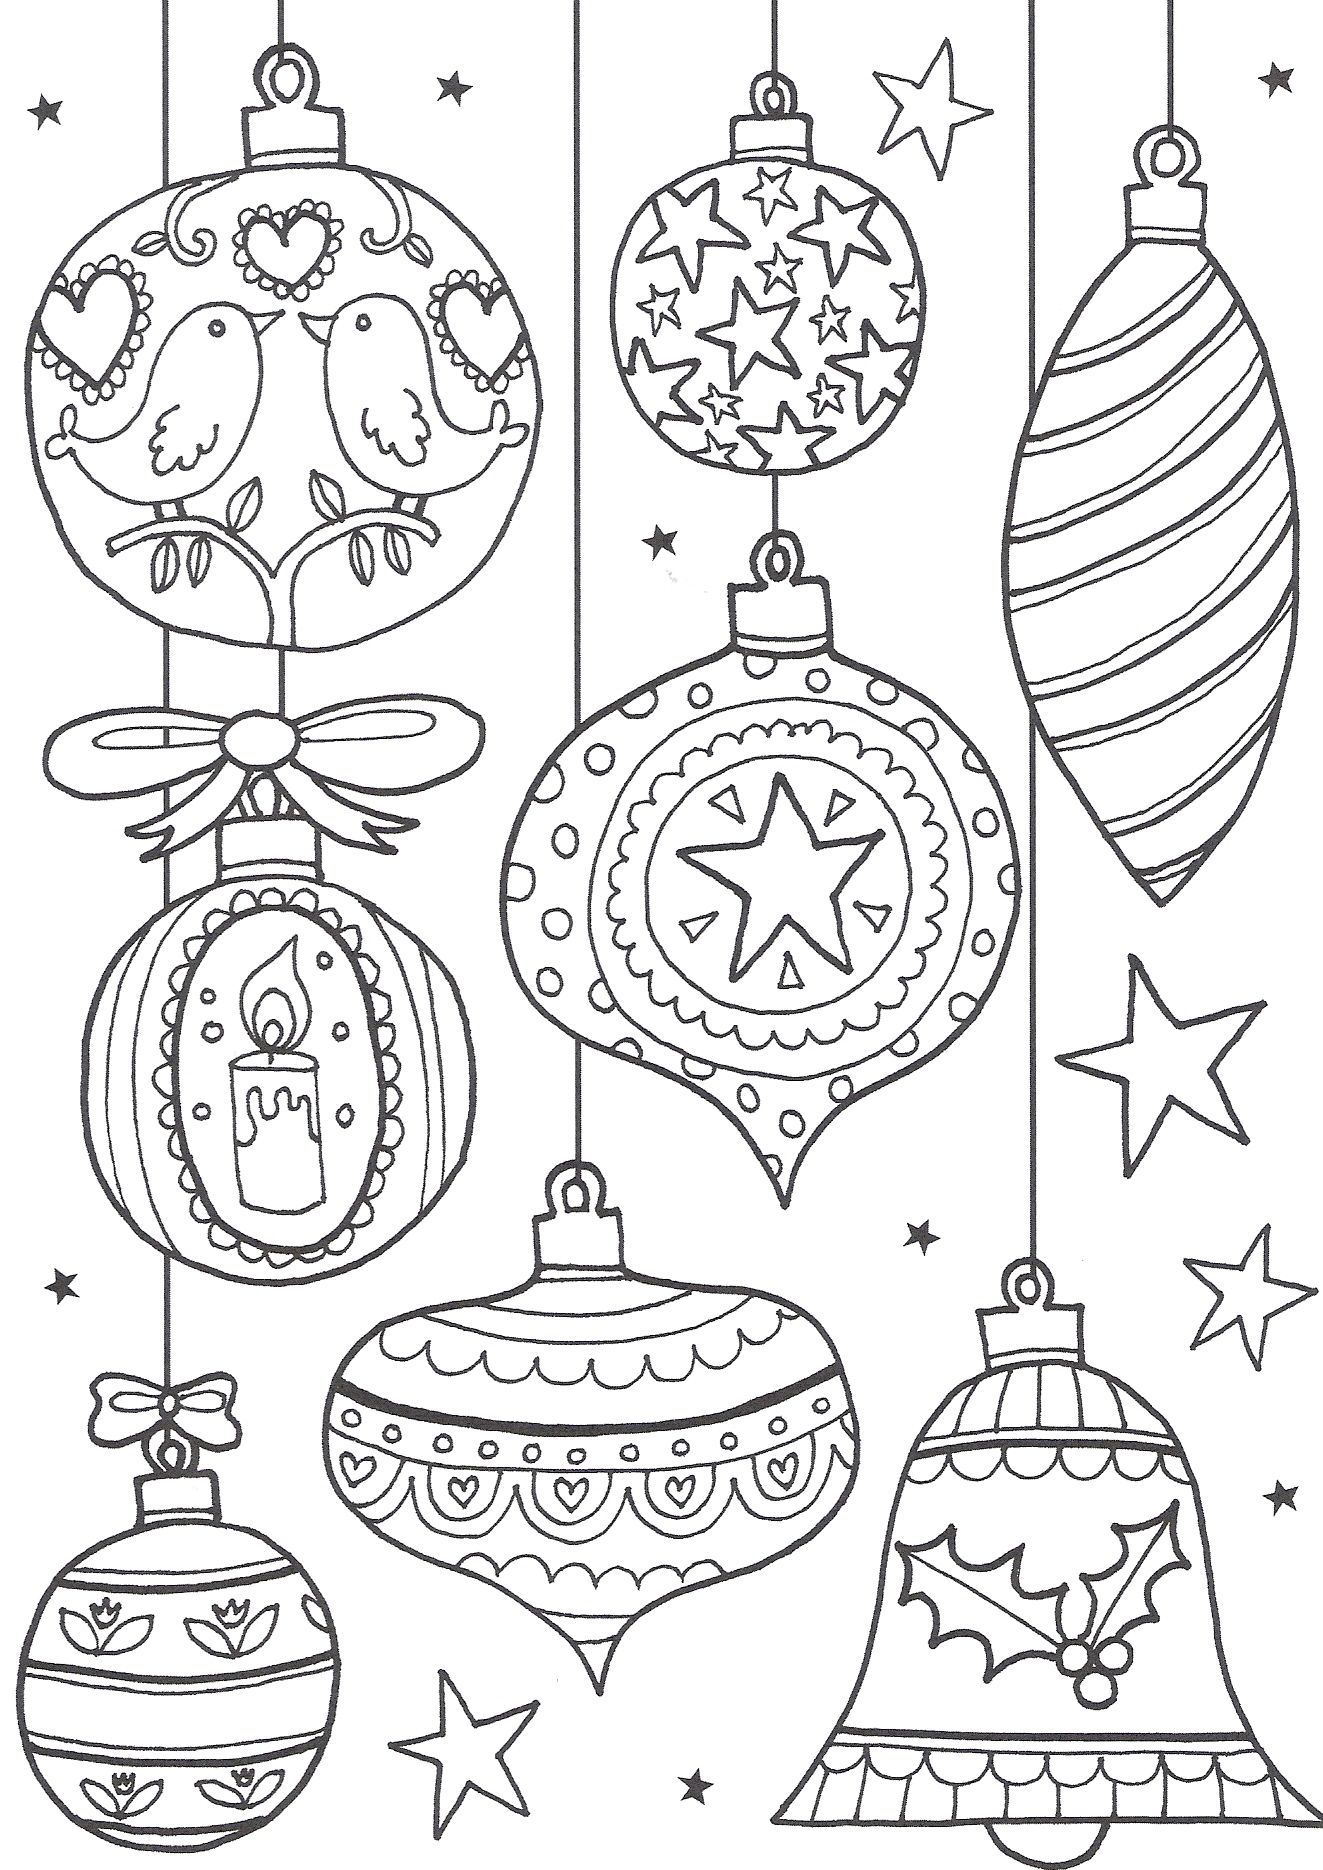 Christmas Coloring Pages For High School With Free Colouring Adults The Ultimate Roundup